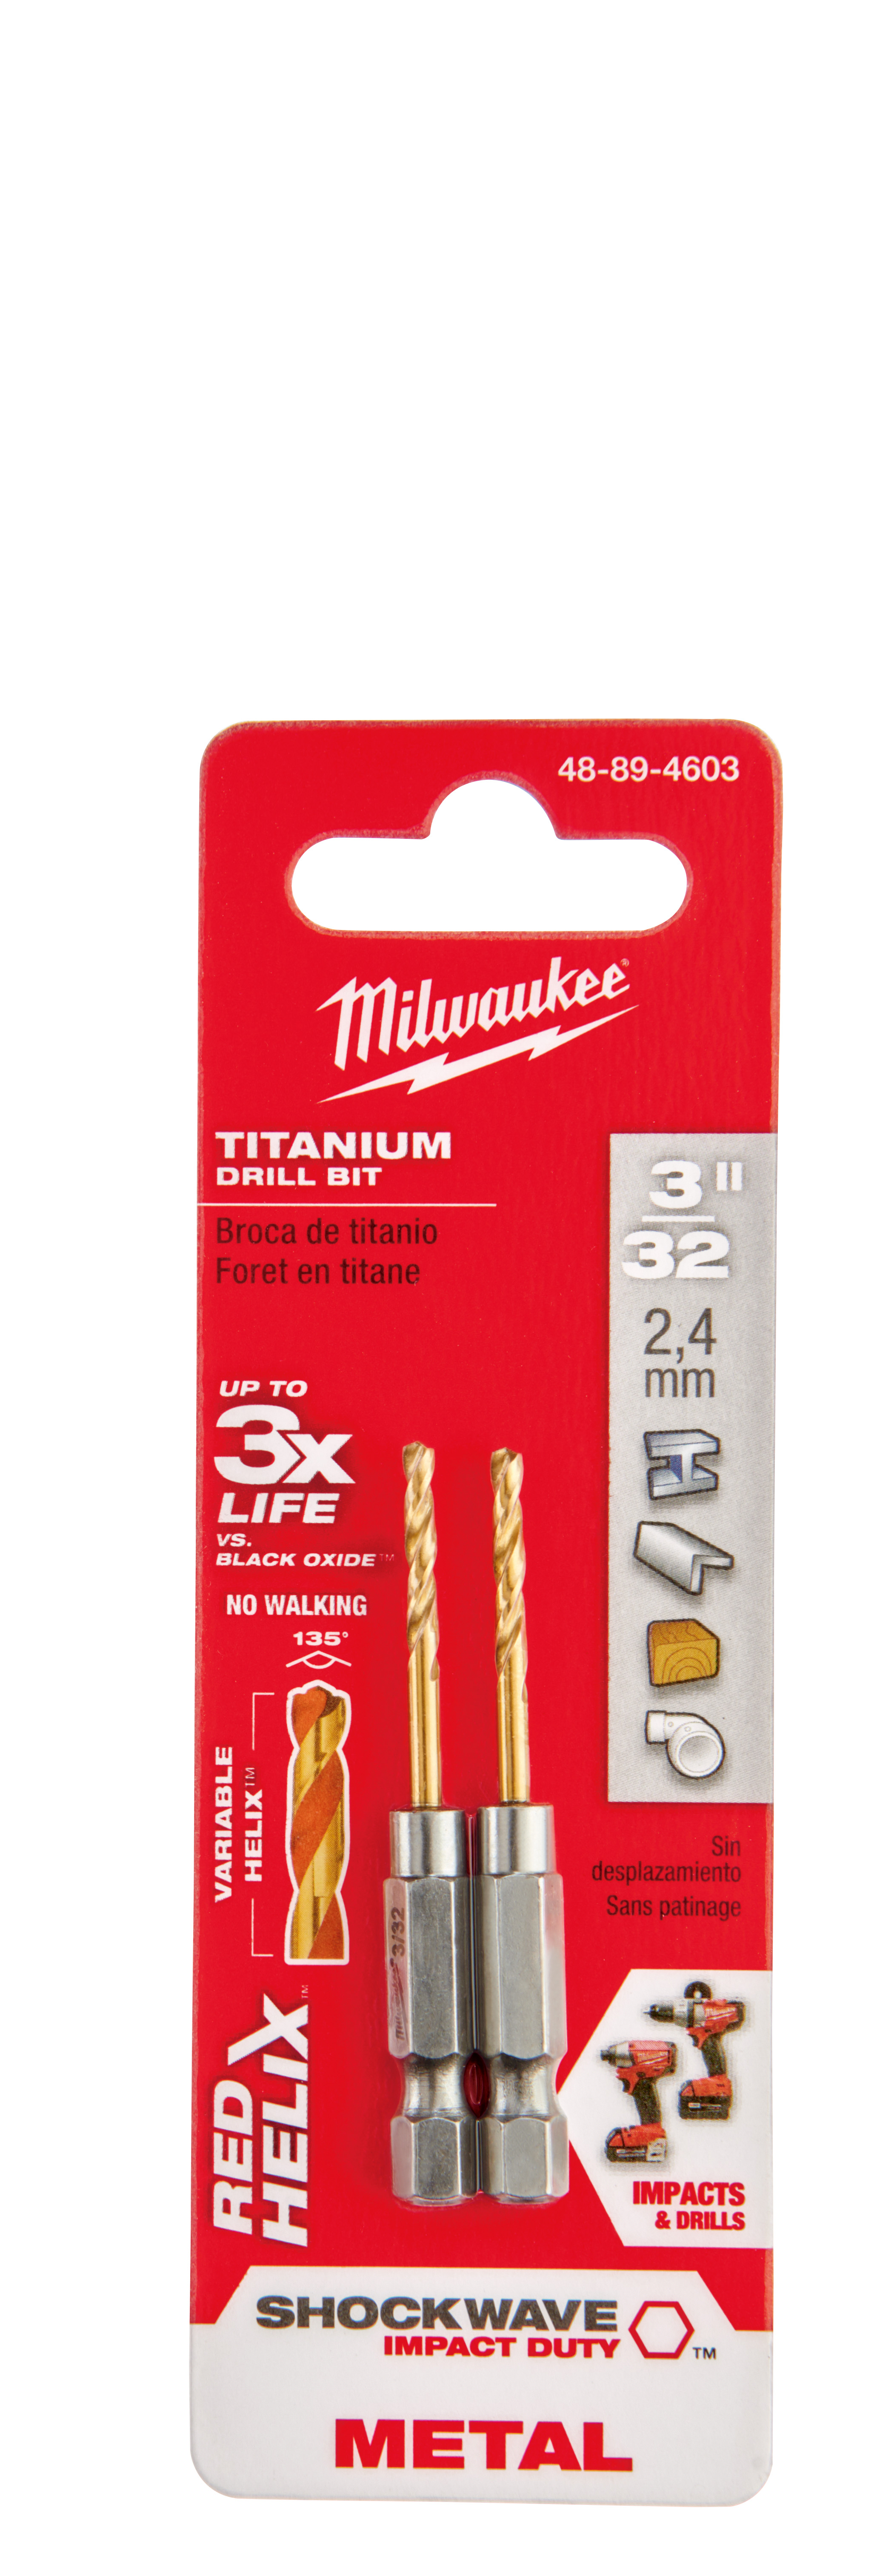 Milwaukee® SHOCKWAVE™ 48-89-4603 Hex Shank Impact Drill Bit, 3/32 in Drill - Fraction, 0.0938 in Drill - Decimal Inch, 47/64 in D Cutting